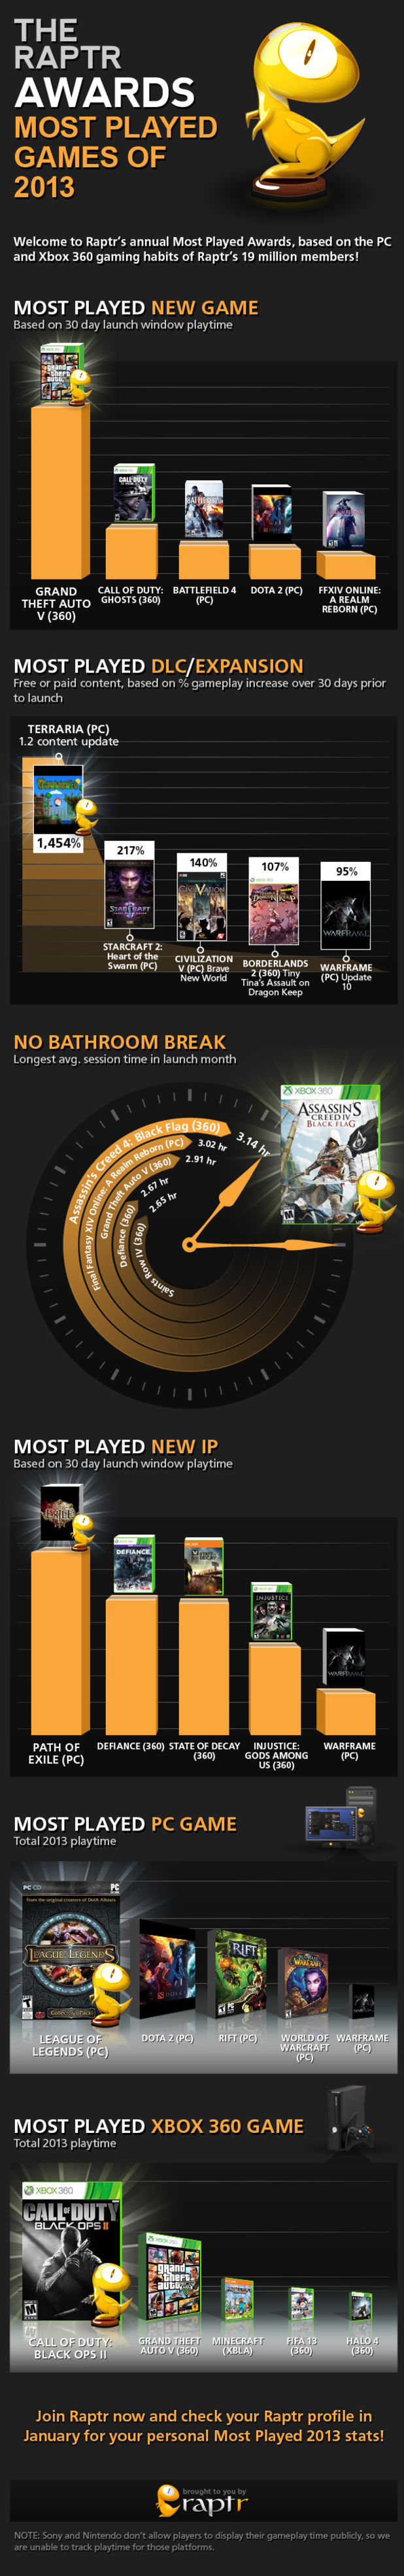 Raptr's most played games of 2013